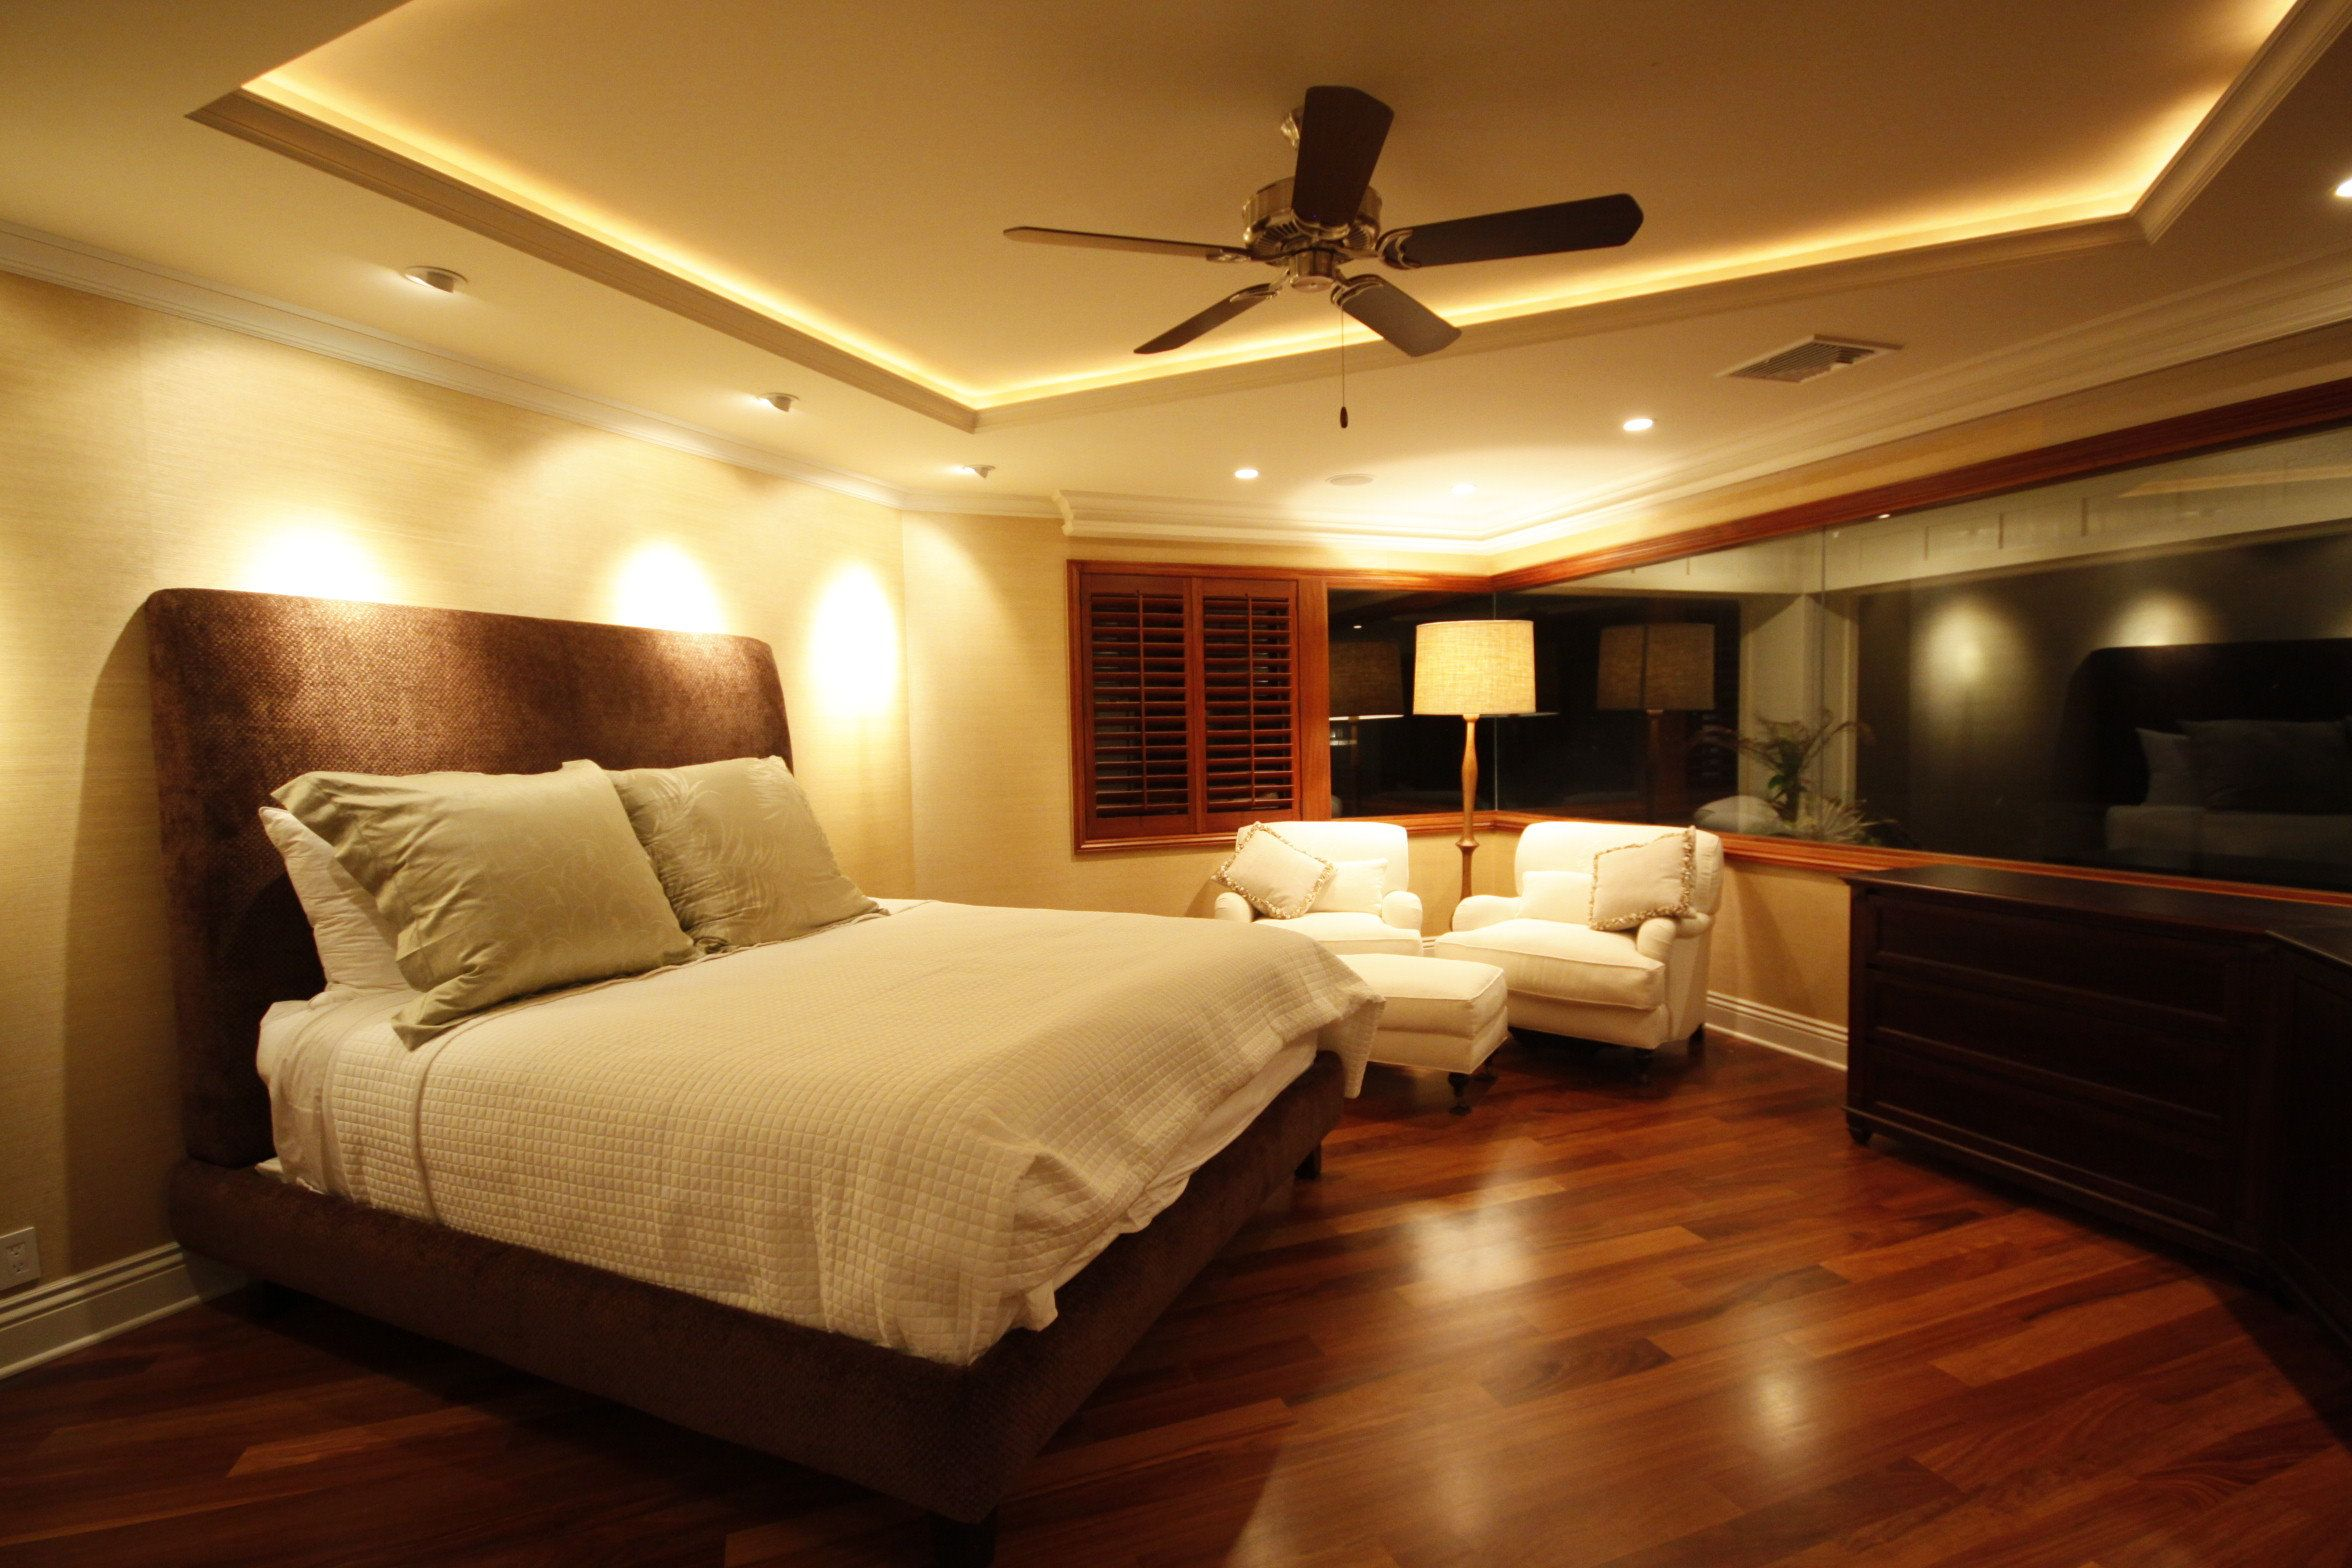 Modern Master Bedroom Appealing Master Bedroom Modern Decor With Wooden Floors